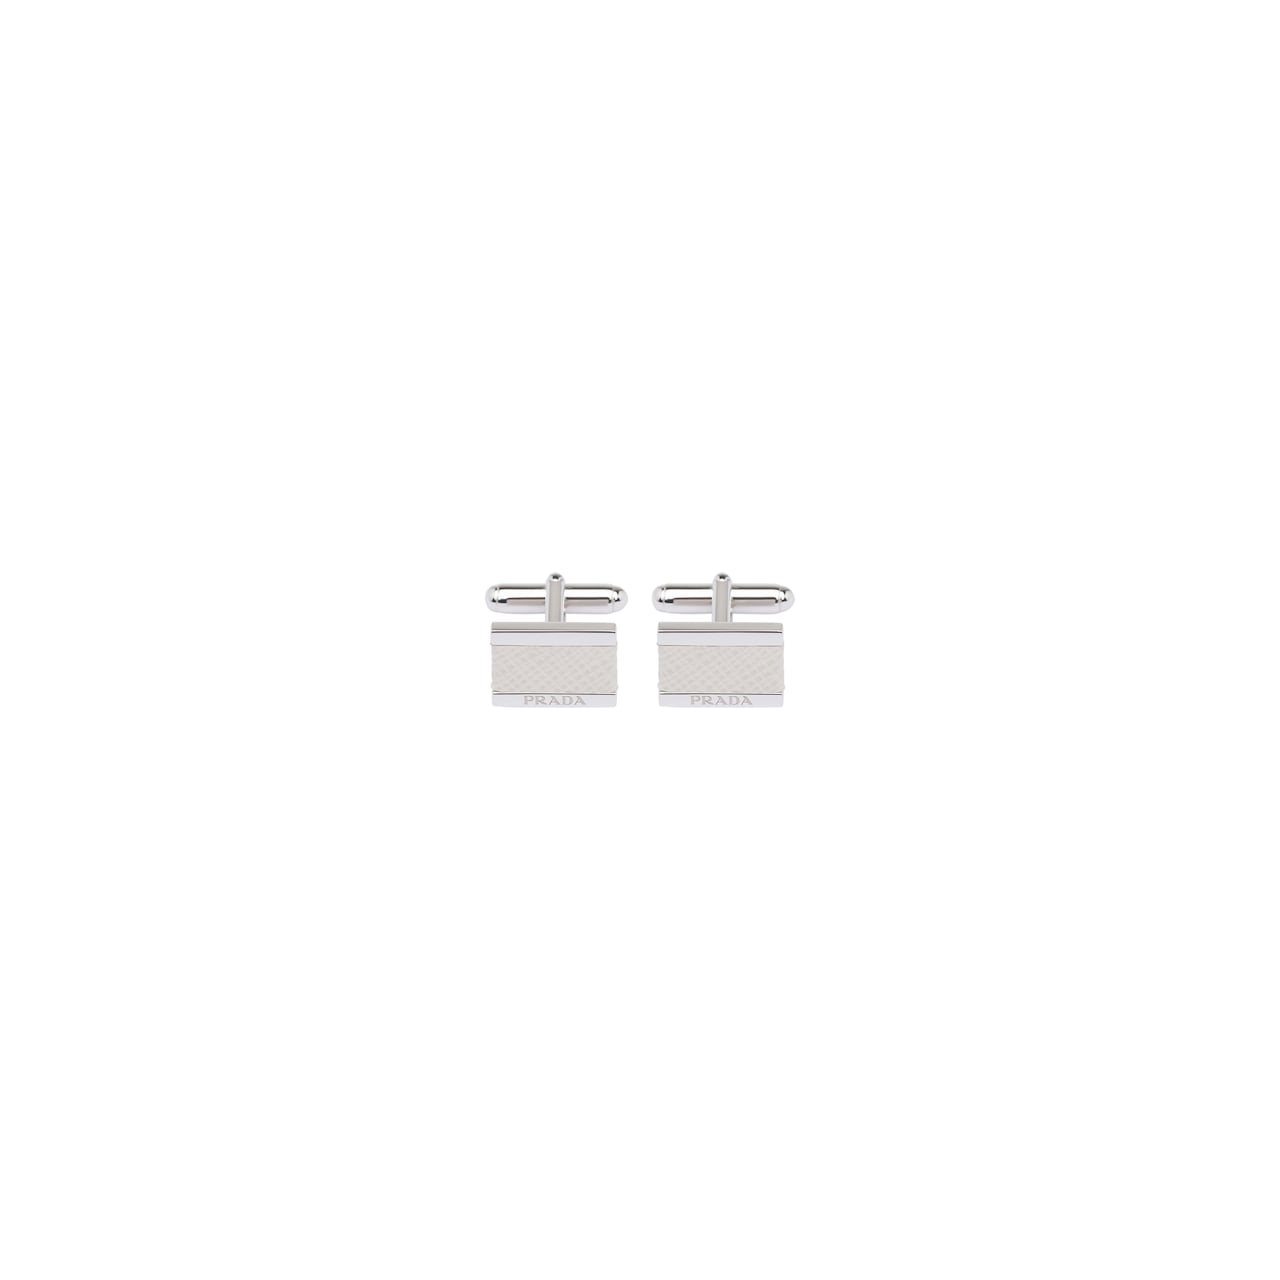 Silver and Saffiano leather cufflinks